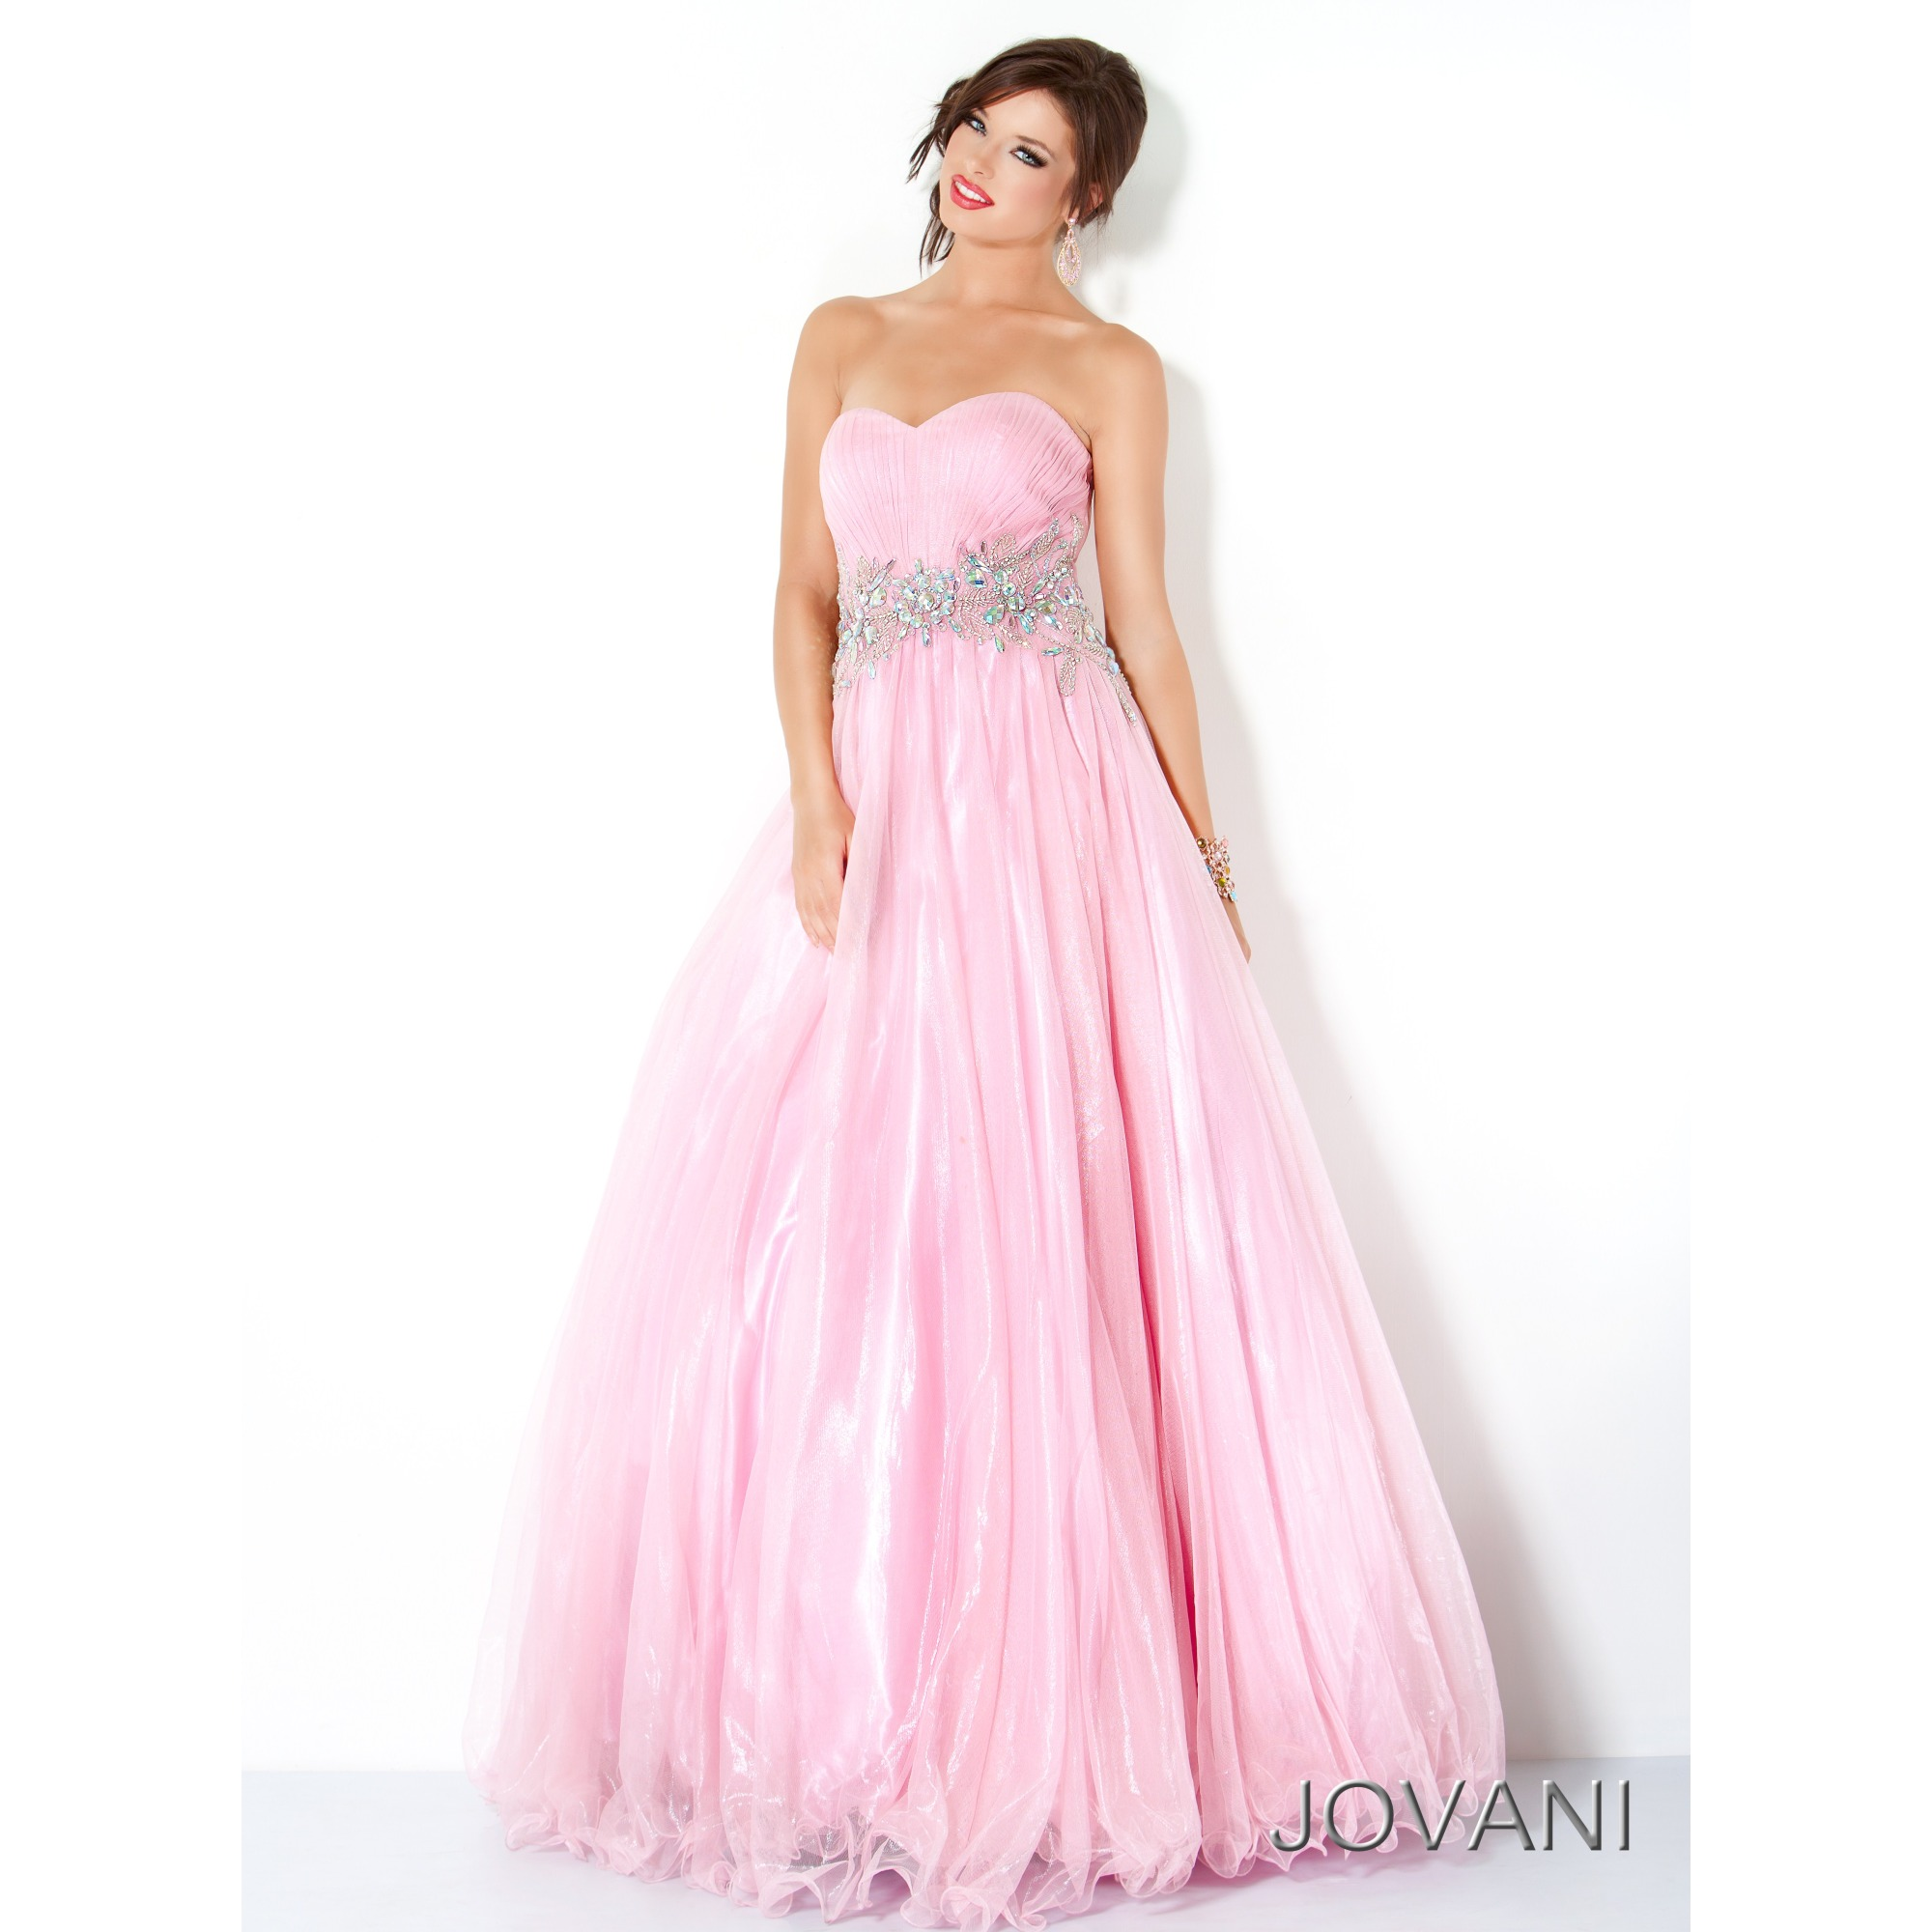 Pink A Line Strapless Sweetheart Floor Length Zipper Prom Dresses With Beading Belt